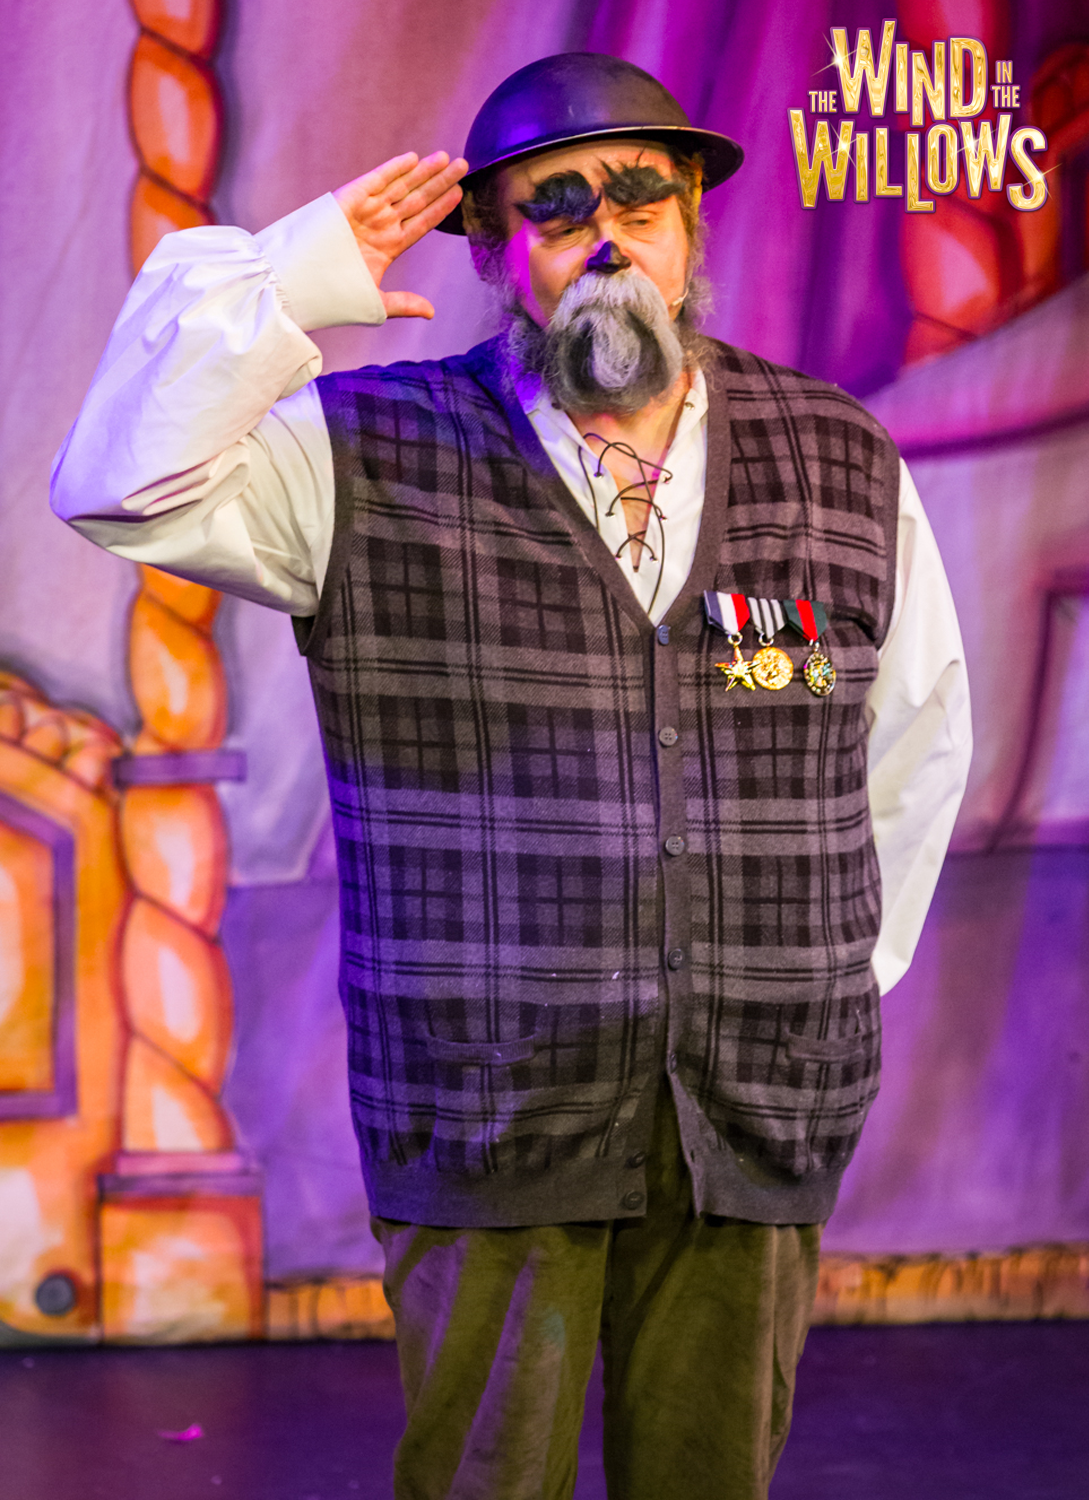 Peter Devoy as Badger